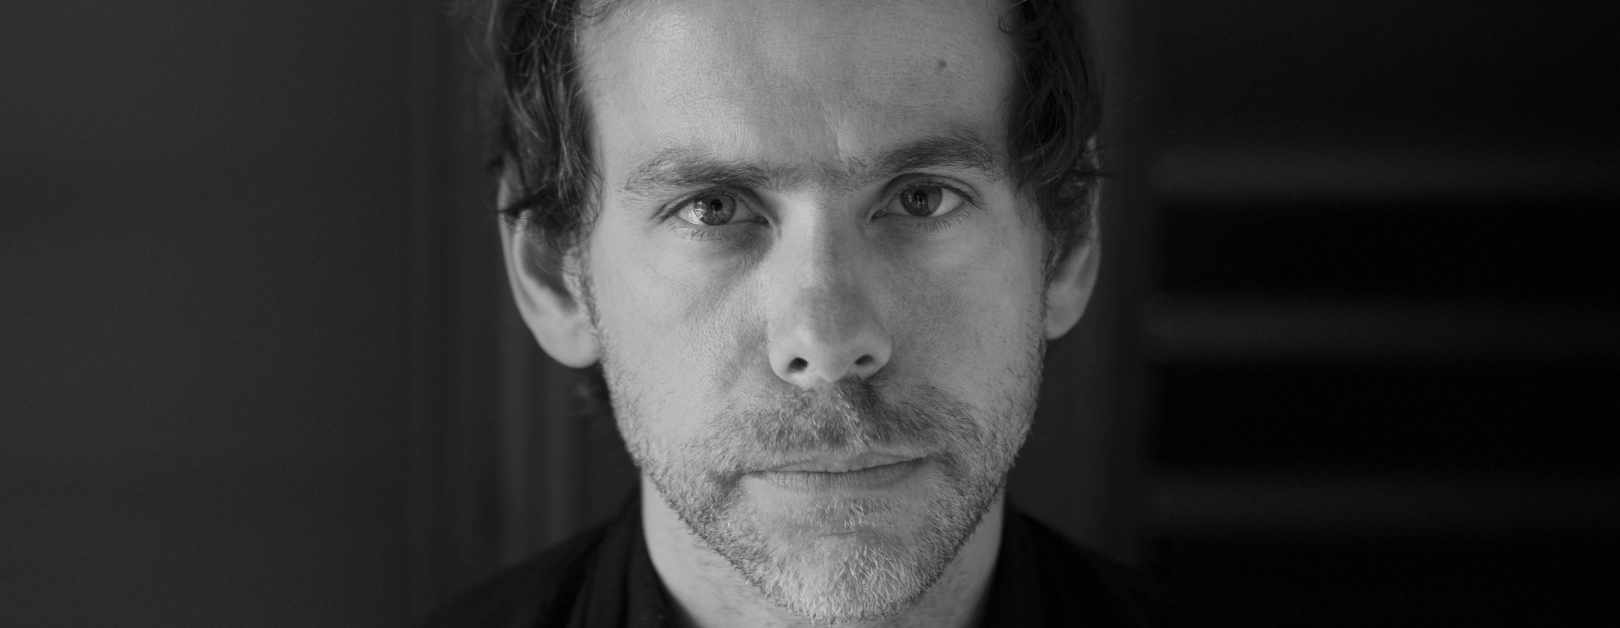 Nightcap: Curated by Bryce Dessner